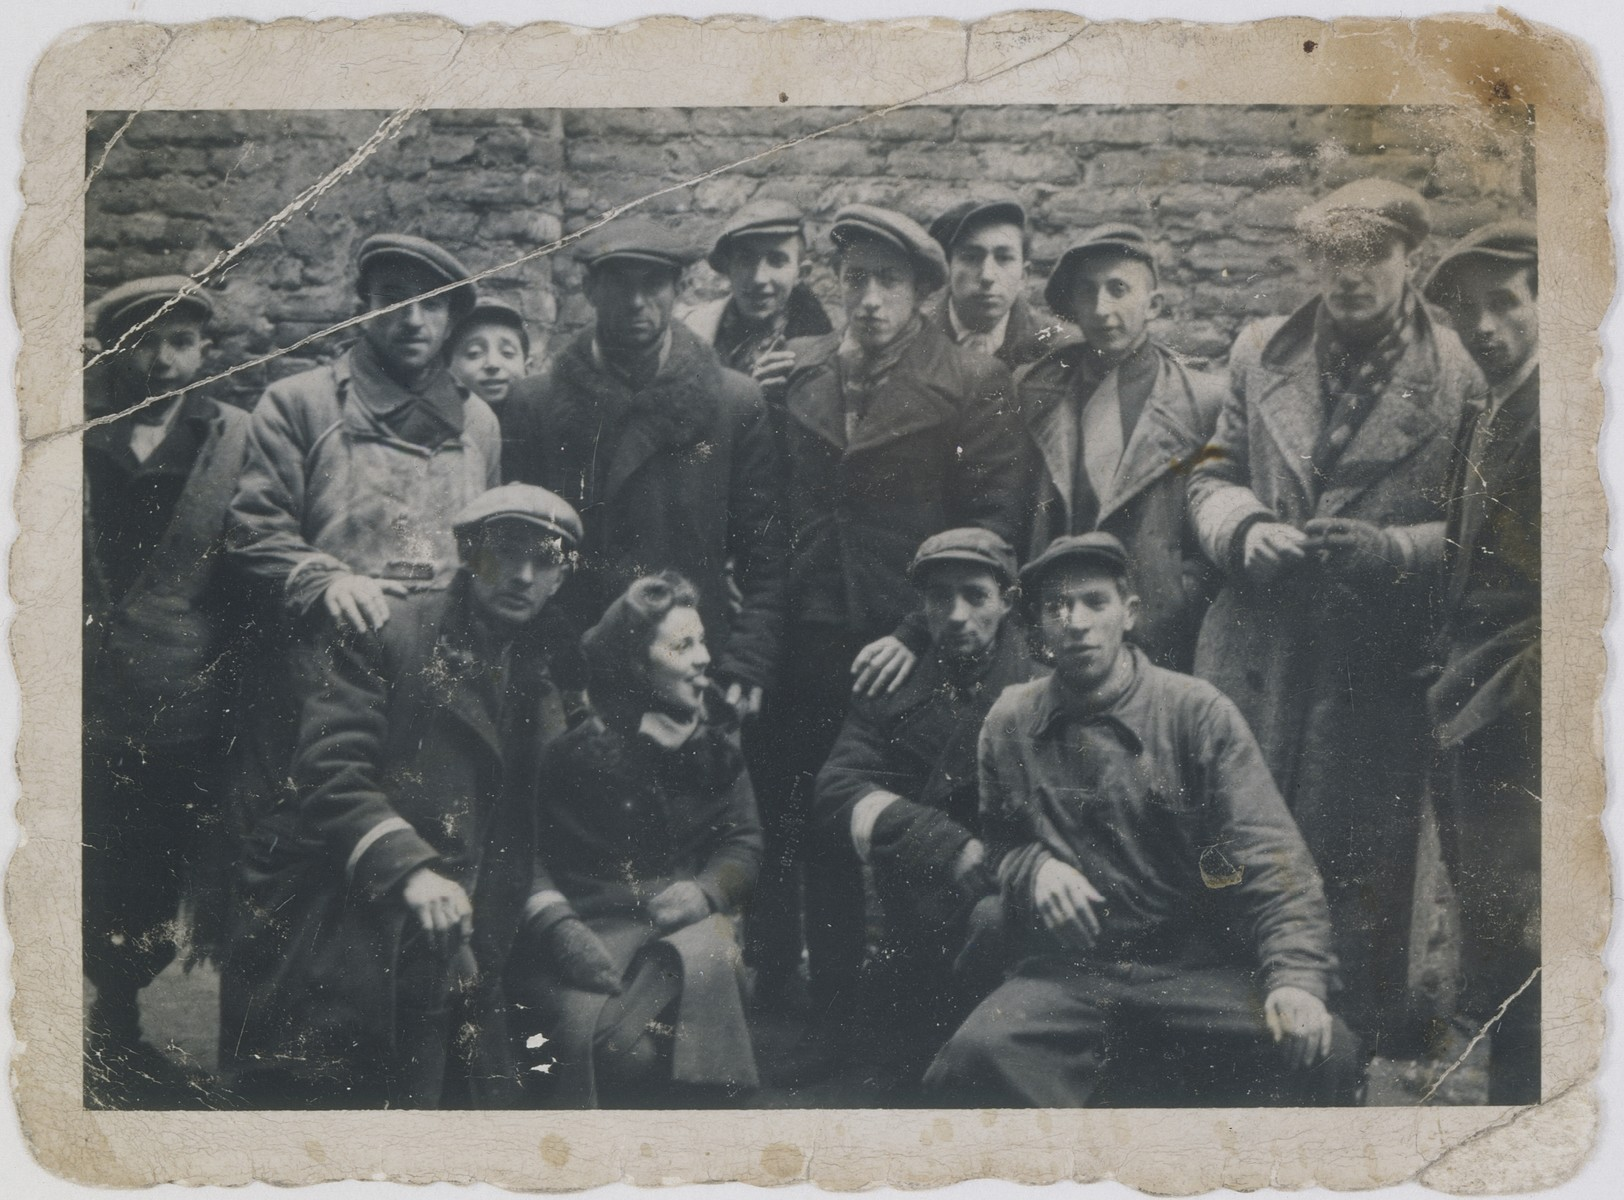 Group portrait of Jewish youth involved in smuggling goods into the Warsaw ghetto in a courtyard located at Plac Mirowski 9.